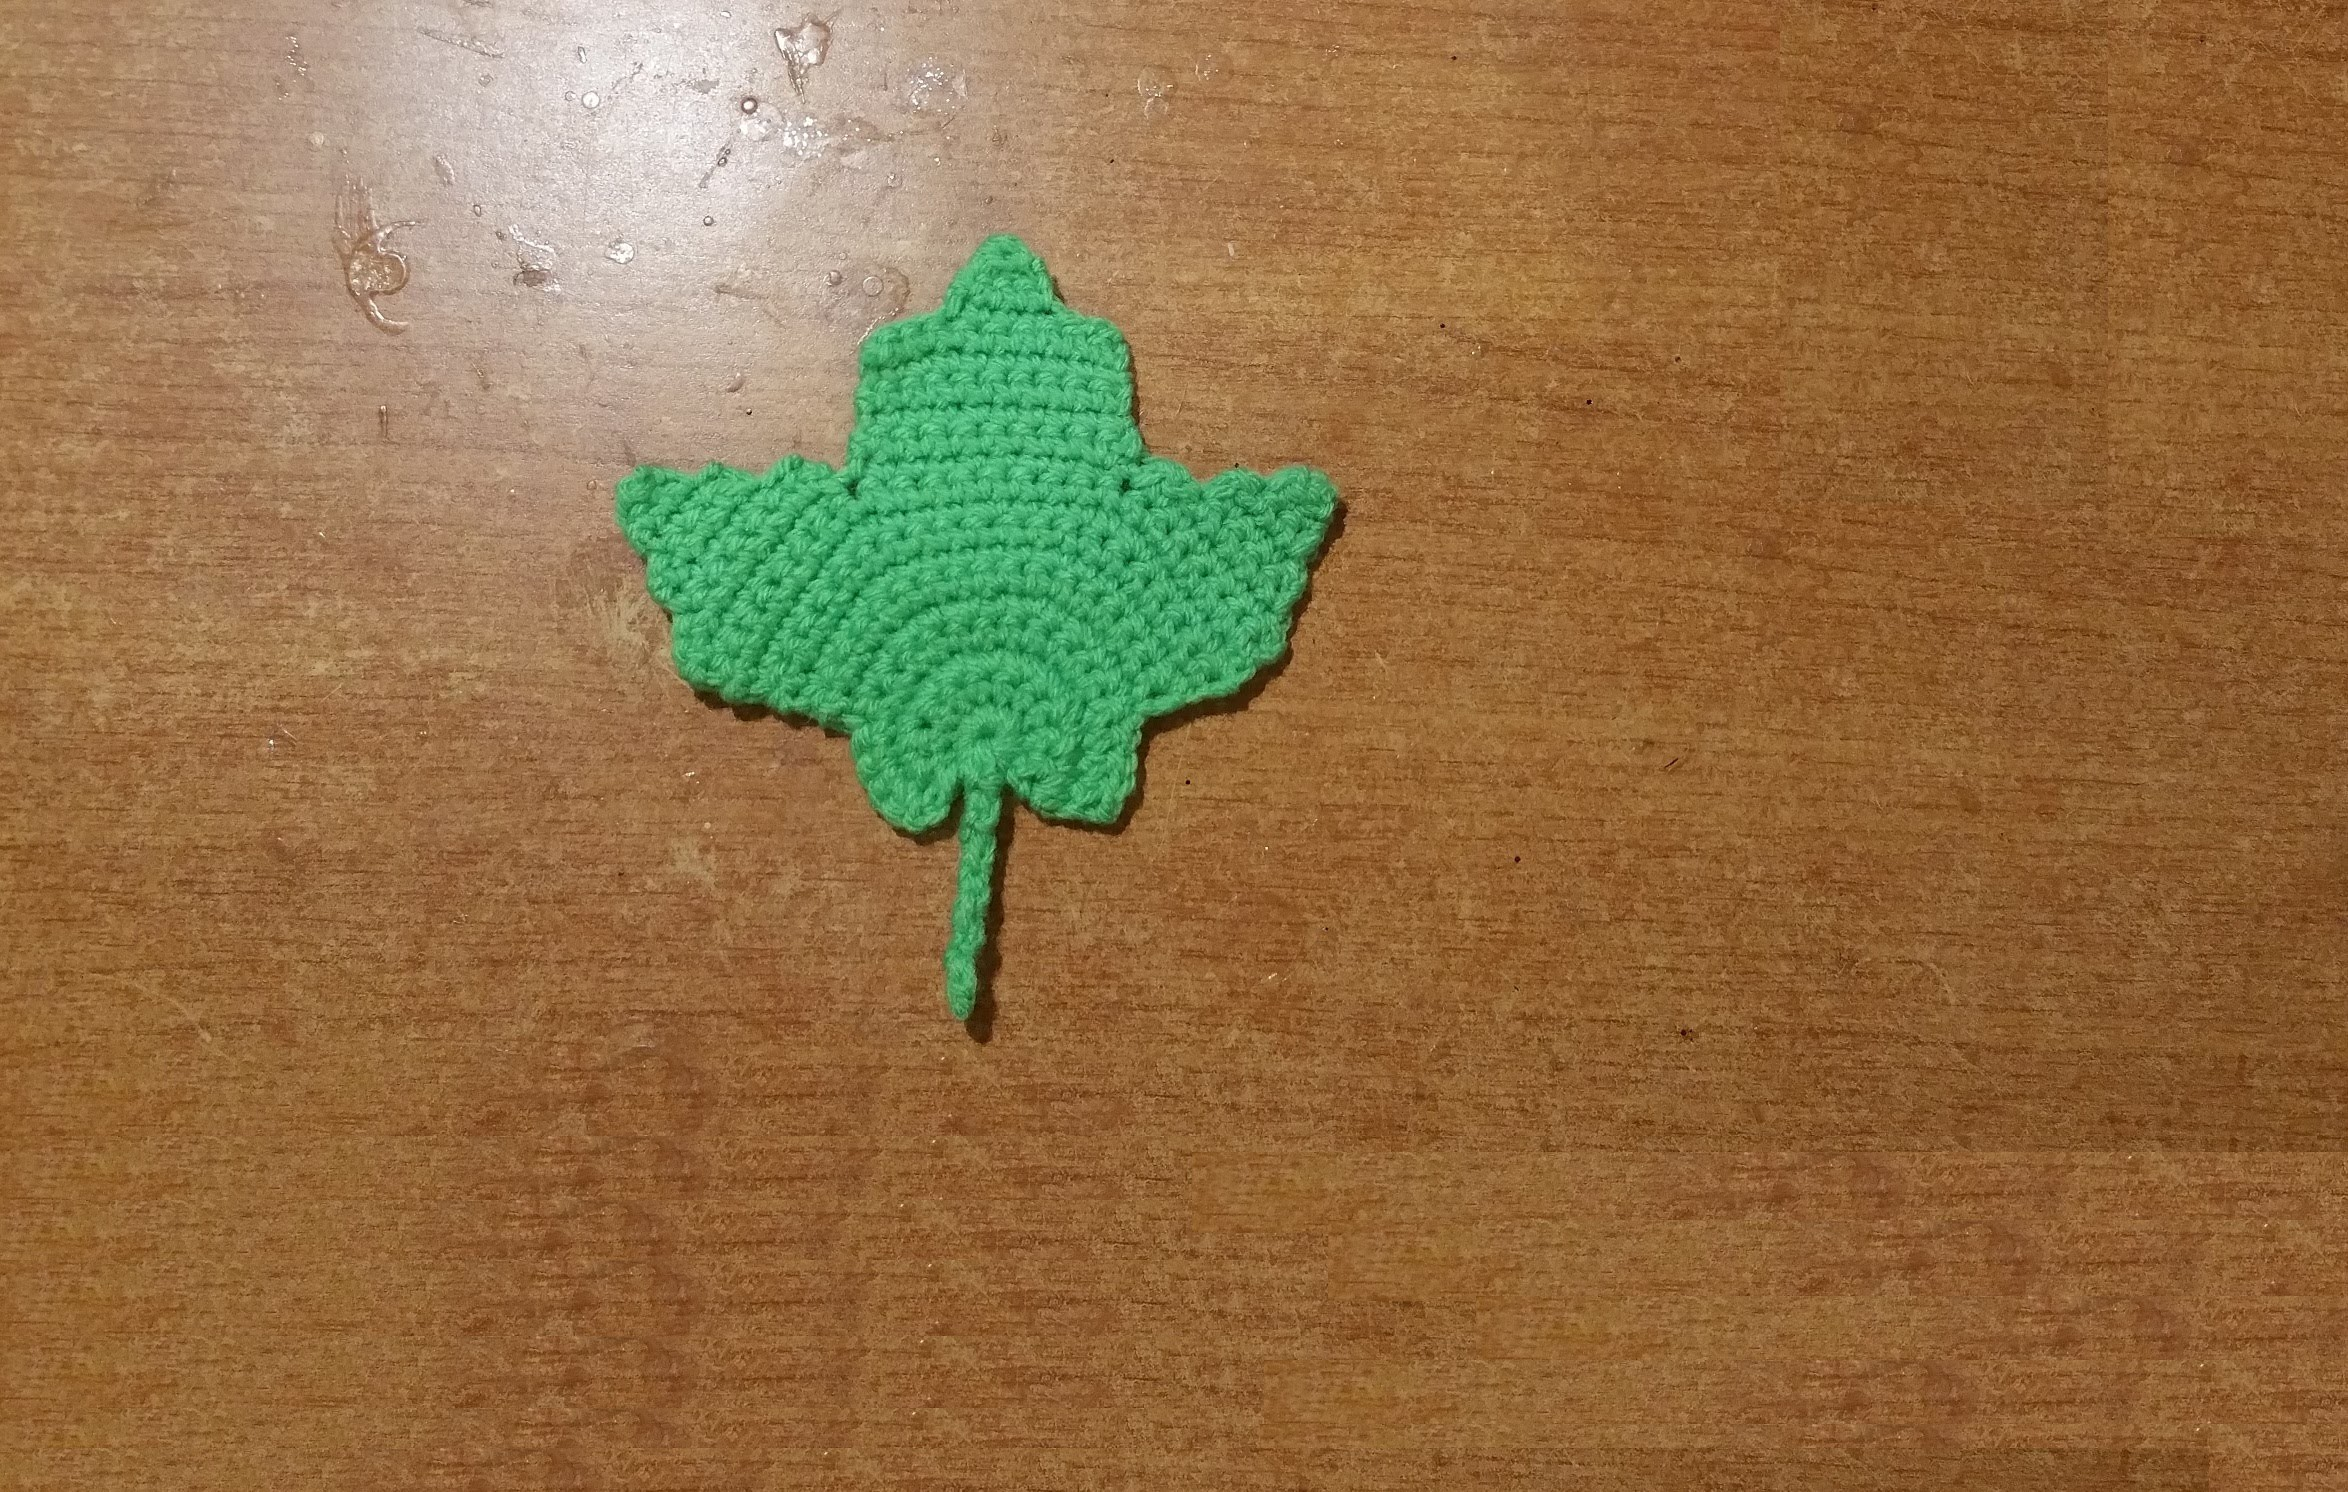 Tutorial foglia all'uncinetto - hoja crochet - crochet leaf